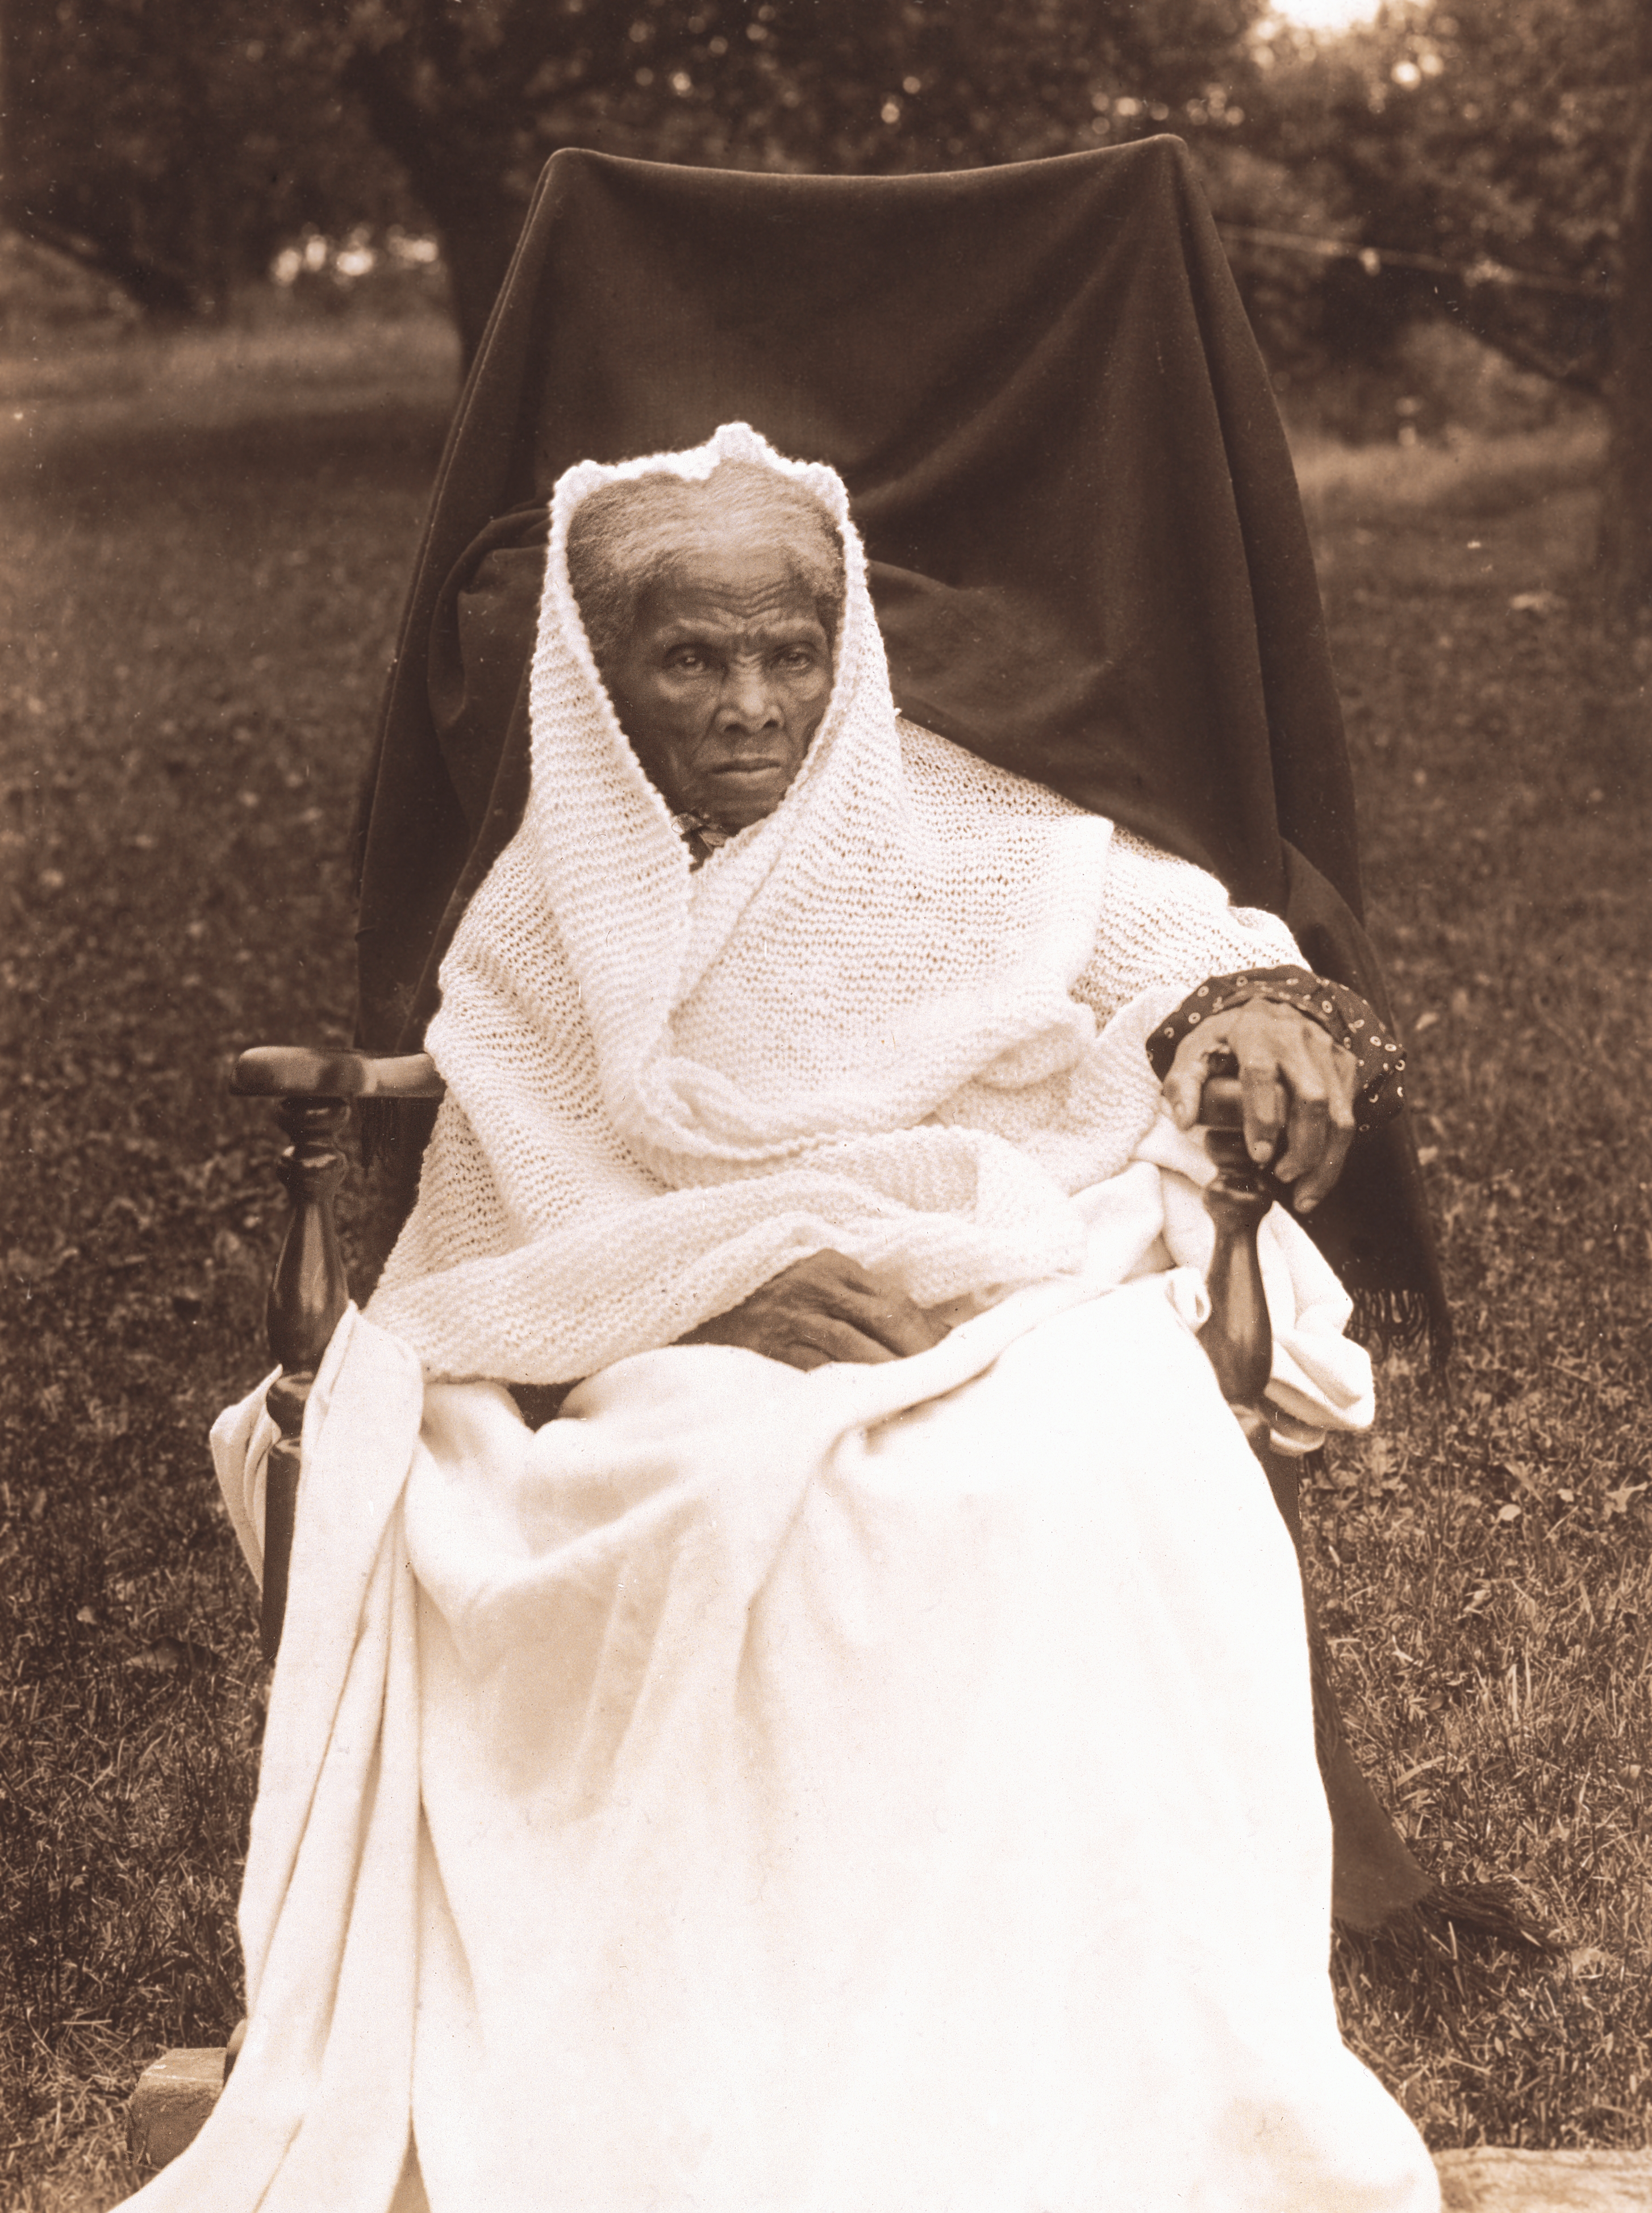 The History Blog » Blog Archive » New Harriet Tubman photo ...